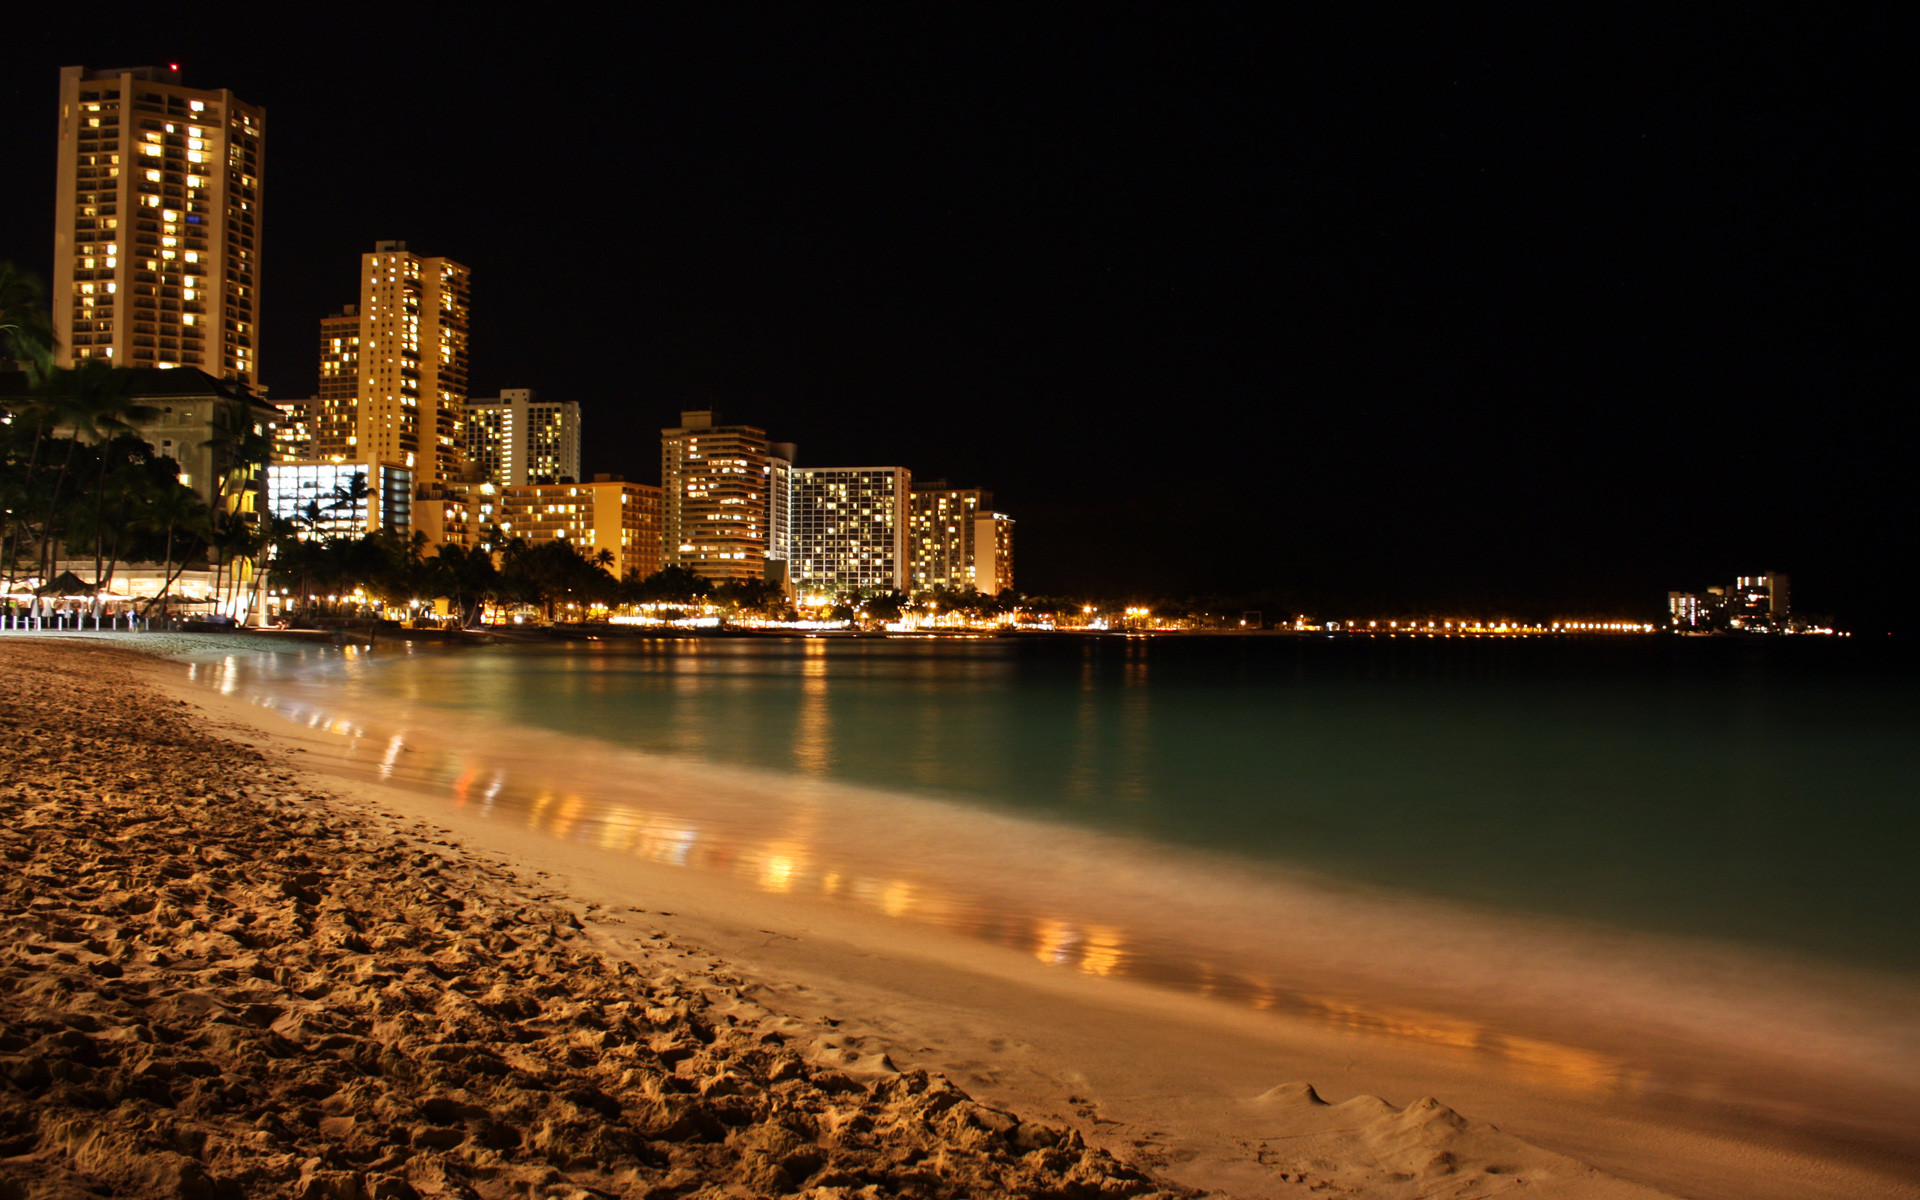 Night Beach Wallpaper Full HD With Wallpapers Wide Resolution px  672.12 KB